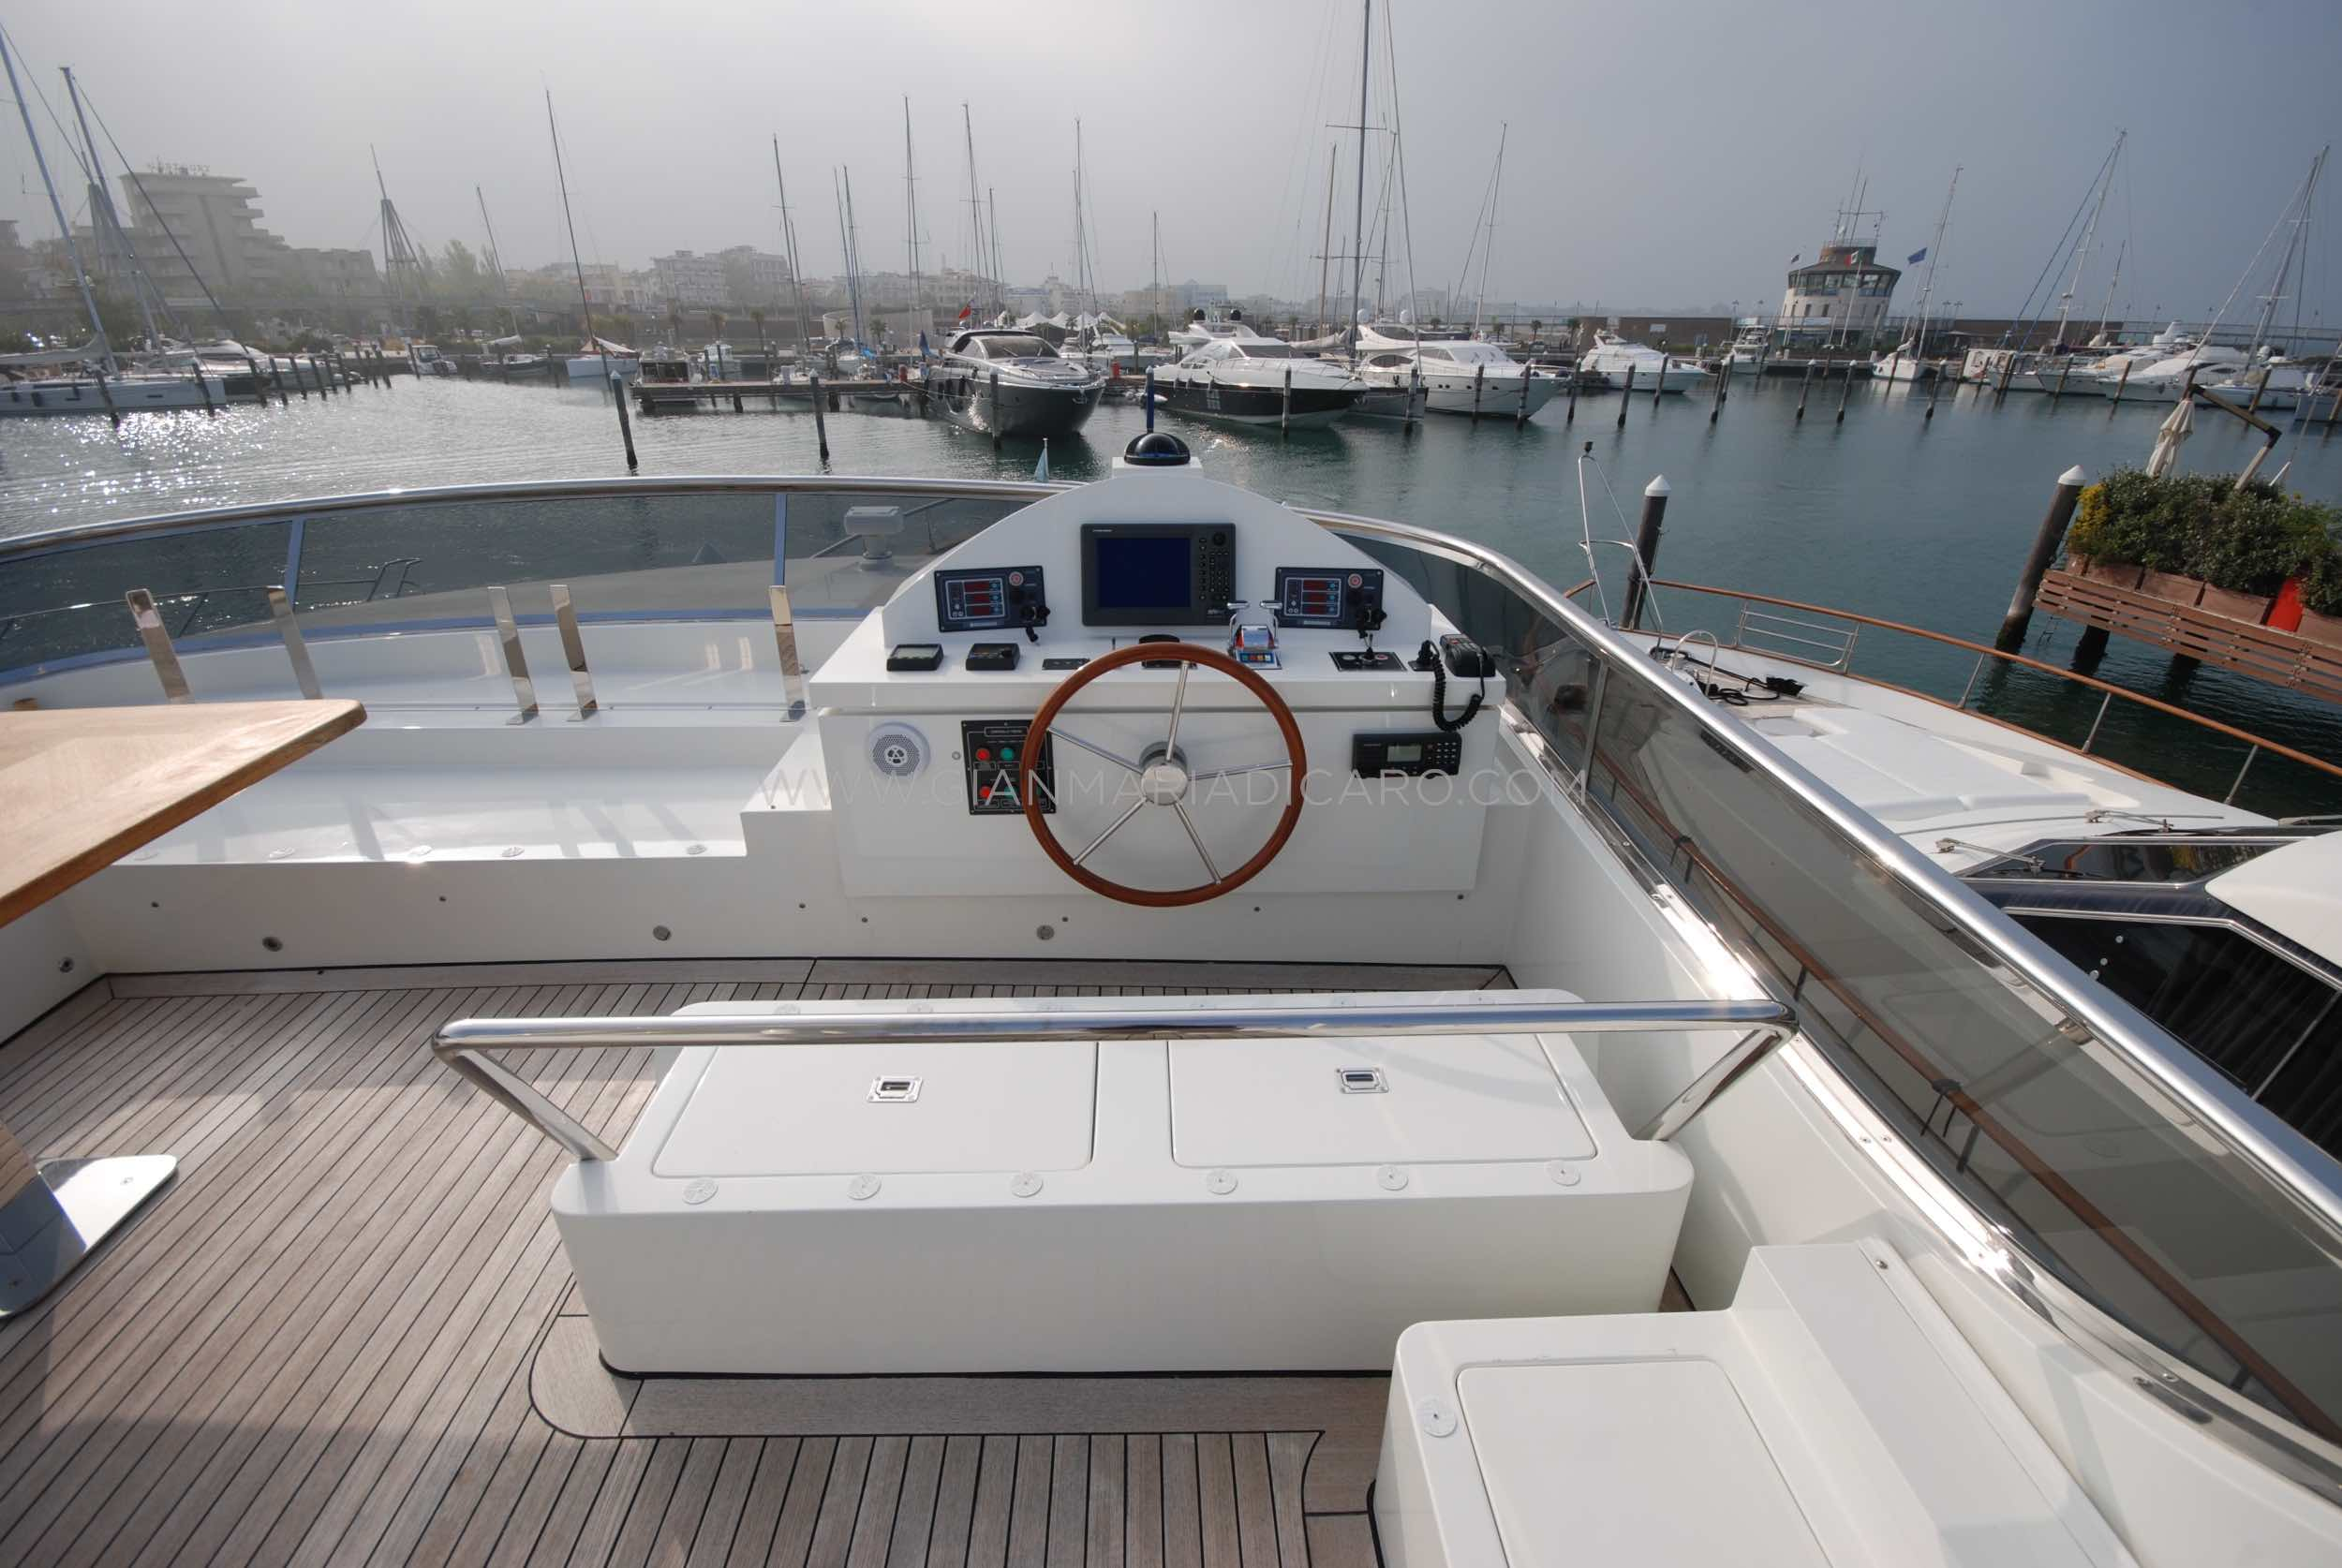 emys-yacht-22-unica-for-sale-93.jpg